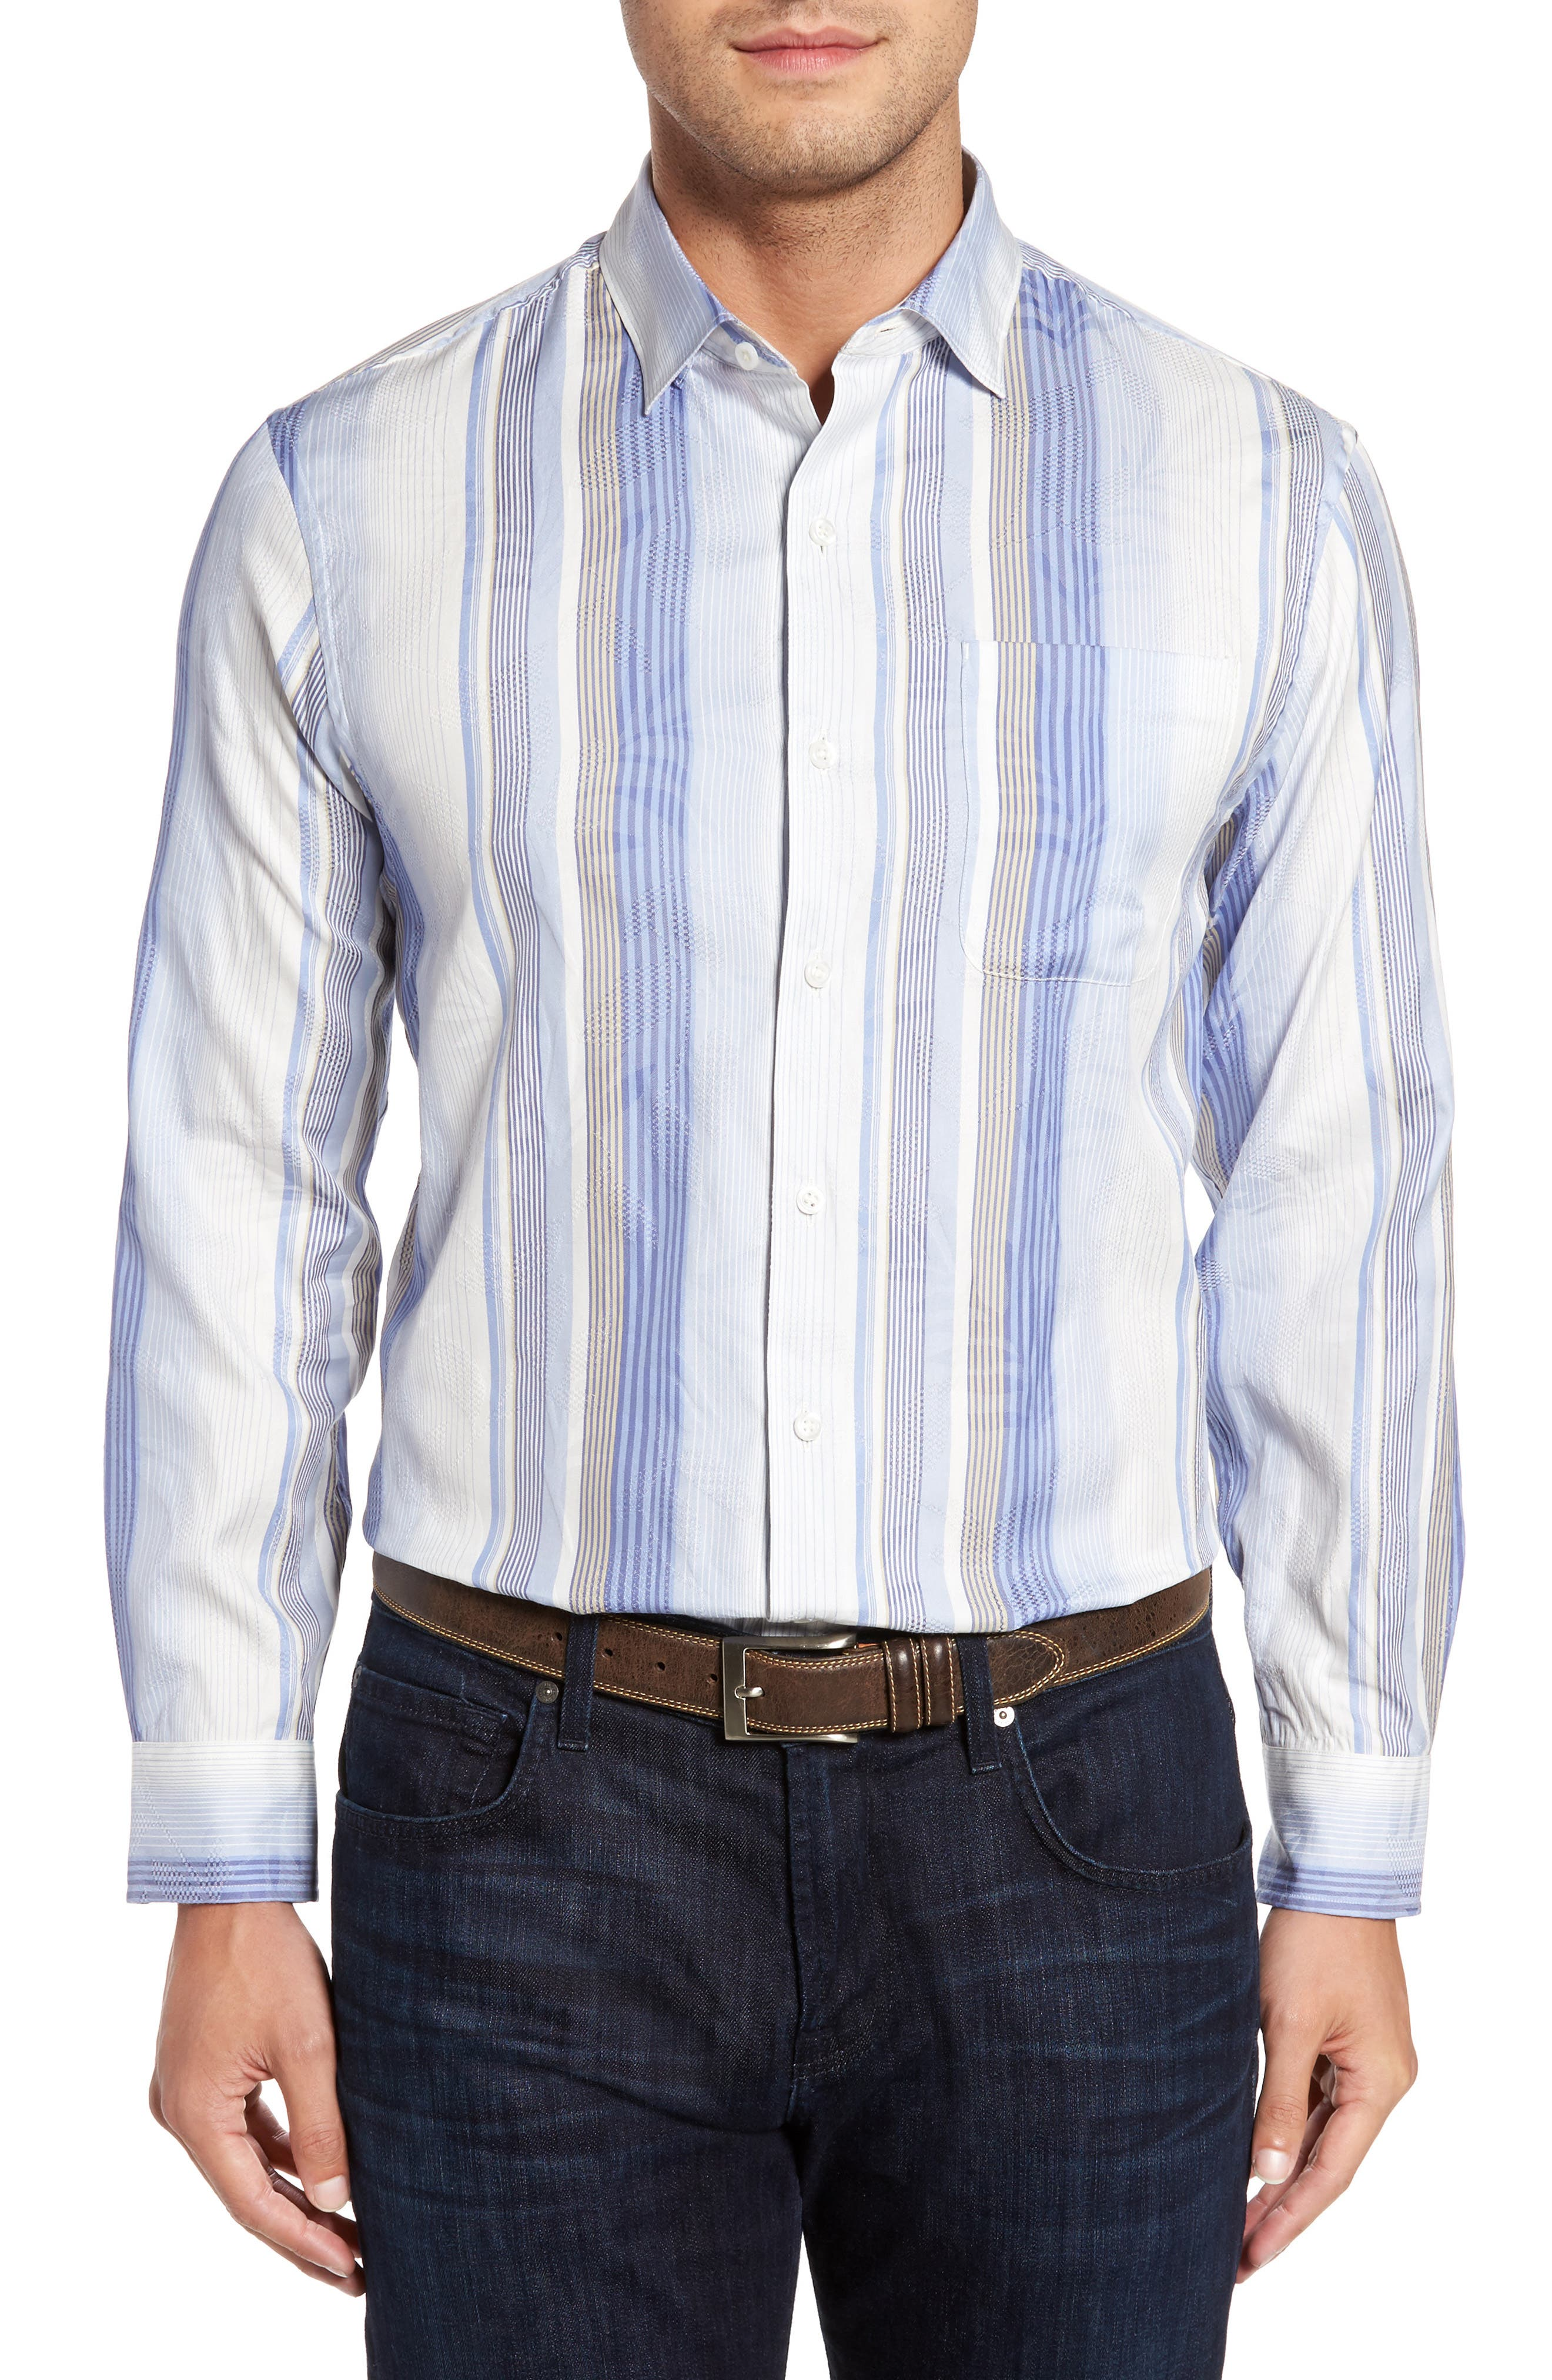 Alternate Image 1 Selected - Tommy Bahama No You Tiznit Sport Shirt